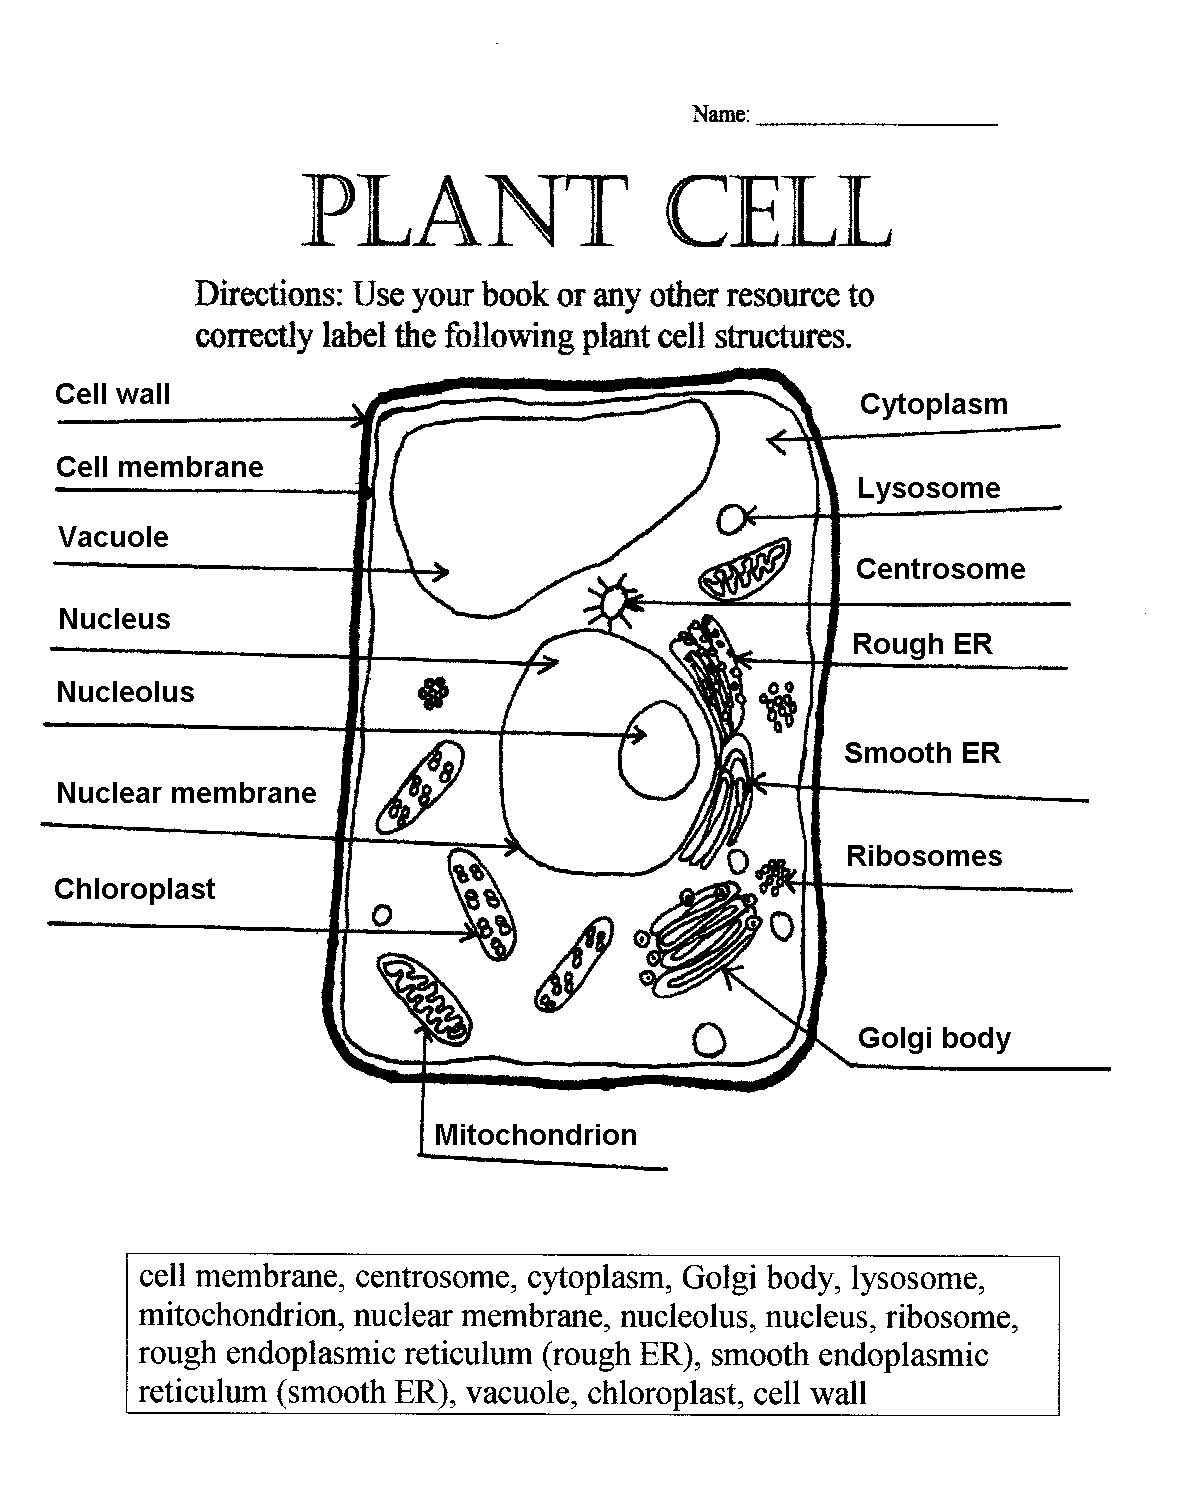 Plant cell parts worksheet with word bank name what makes you plant cell parts worksheet with word bank name what makes you tick animal cell worksheet ccuart Choice Image